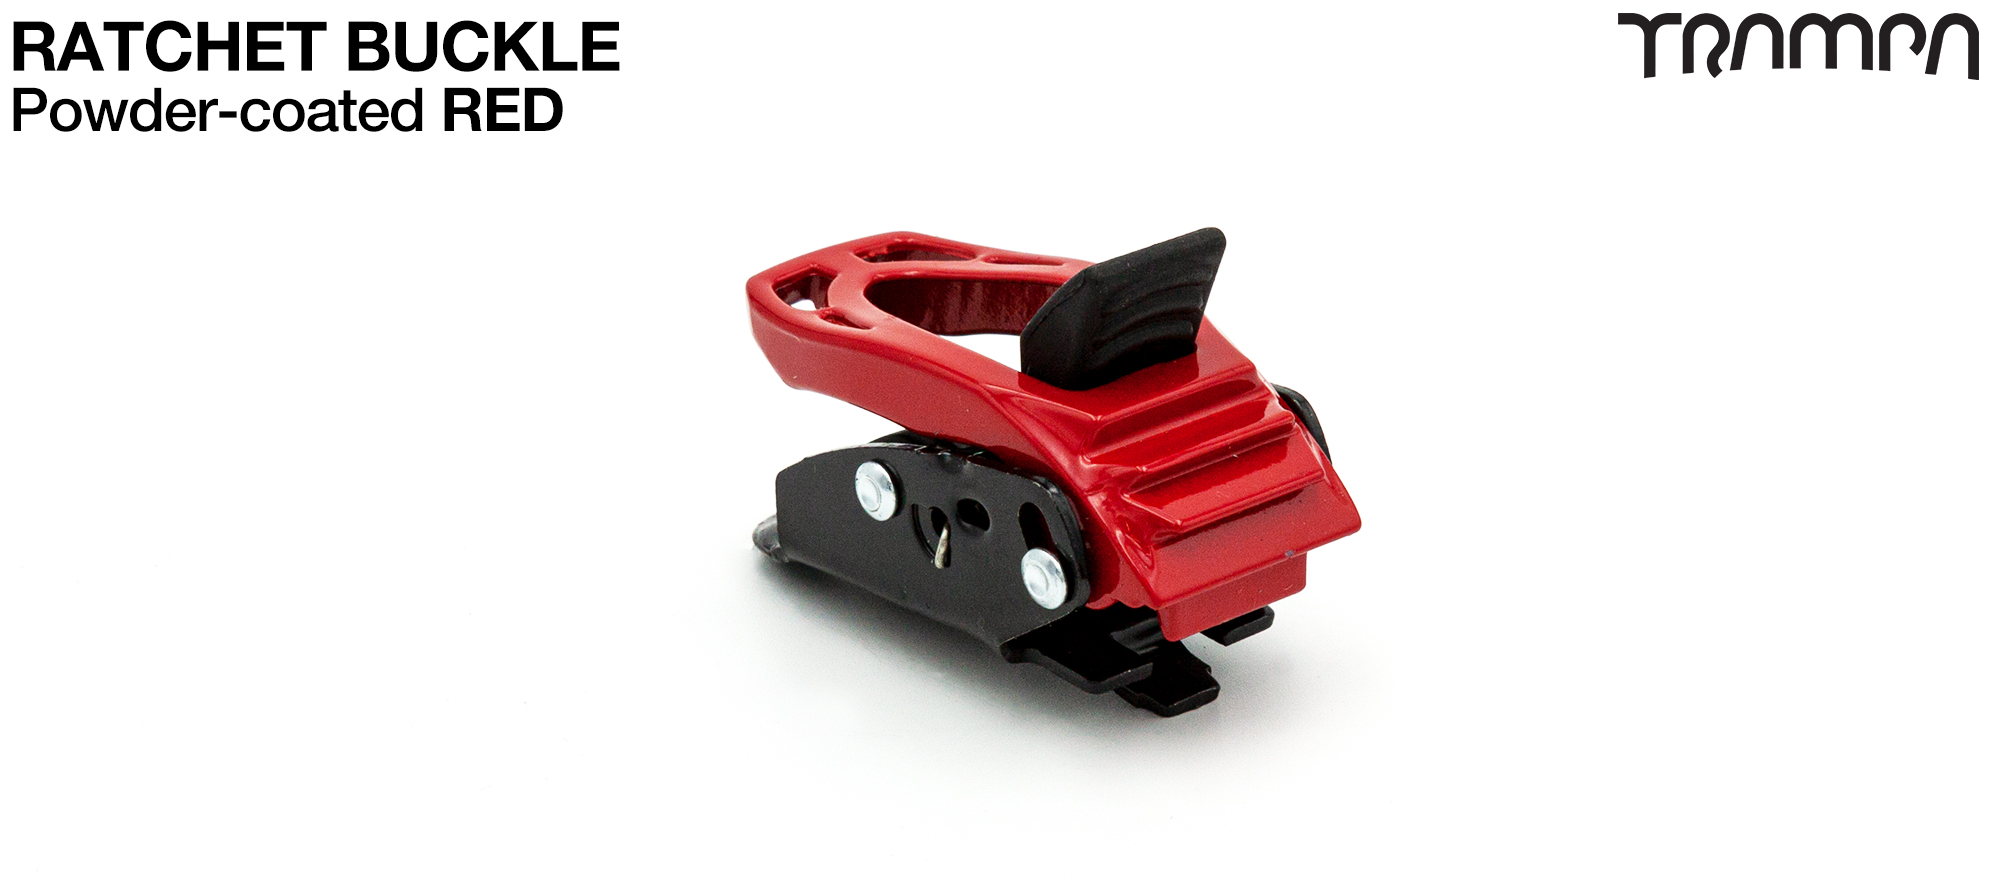 RED Powder Coated Ratchet Buckle